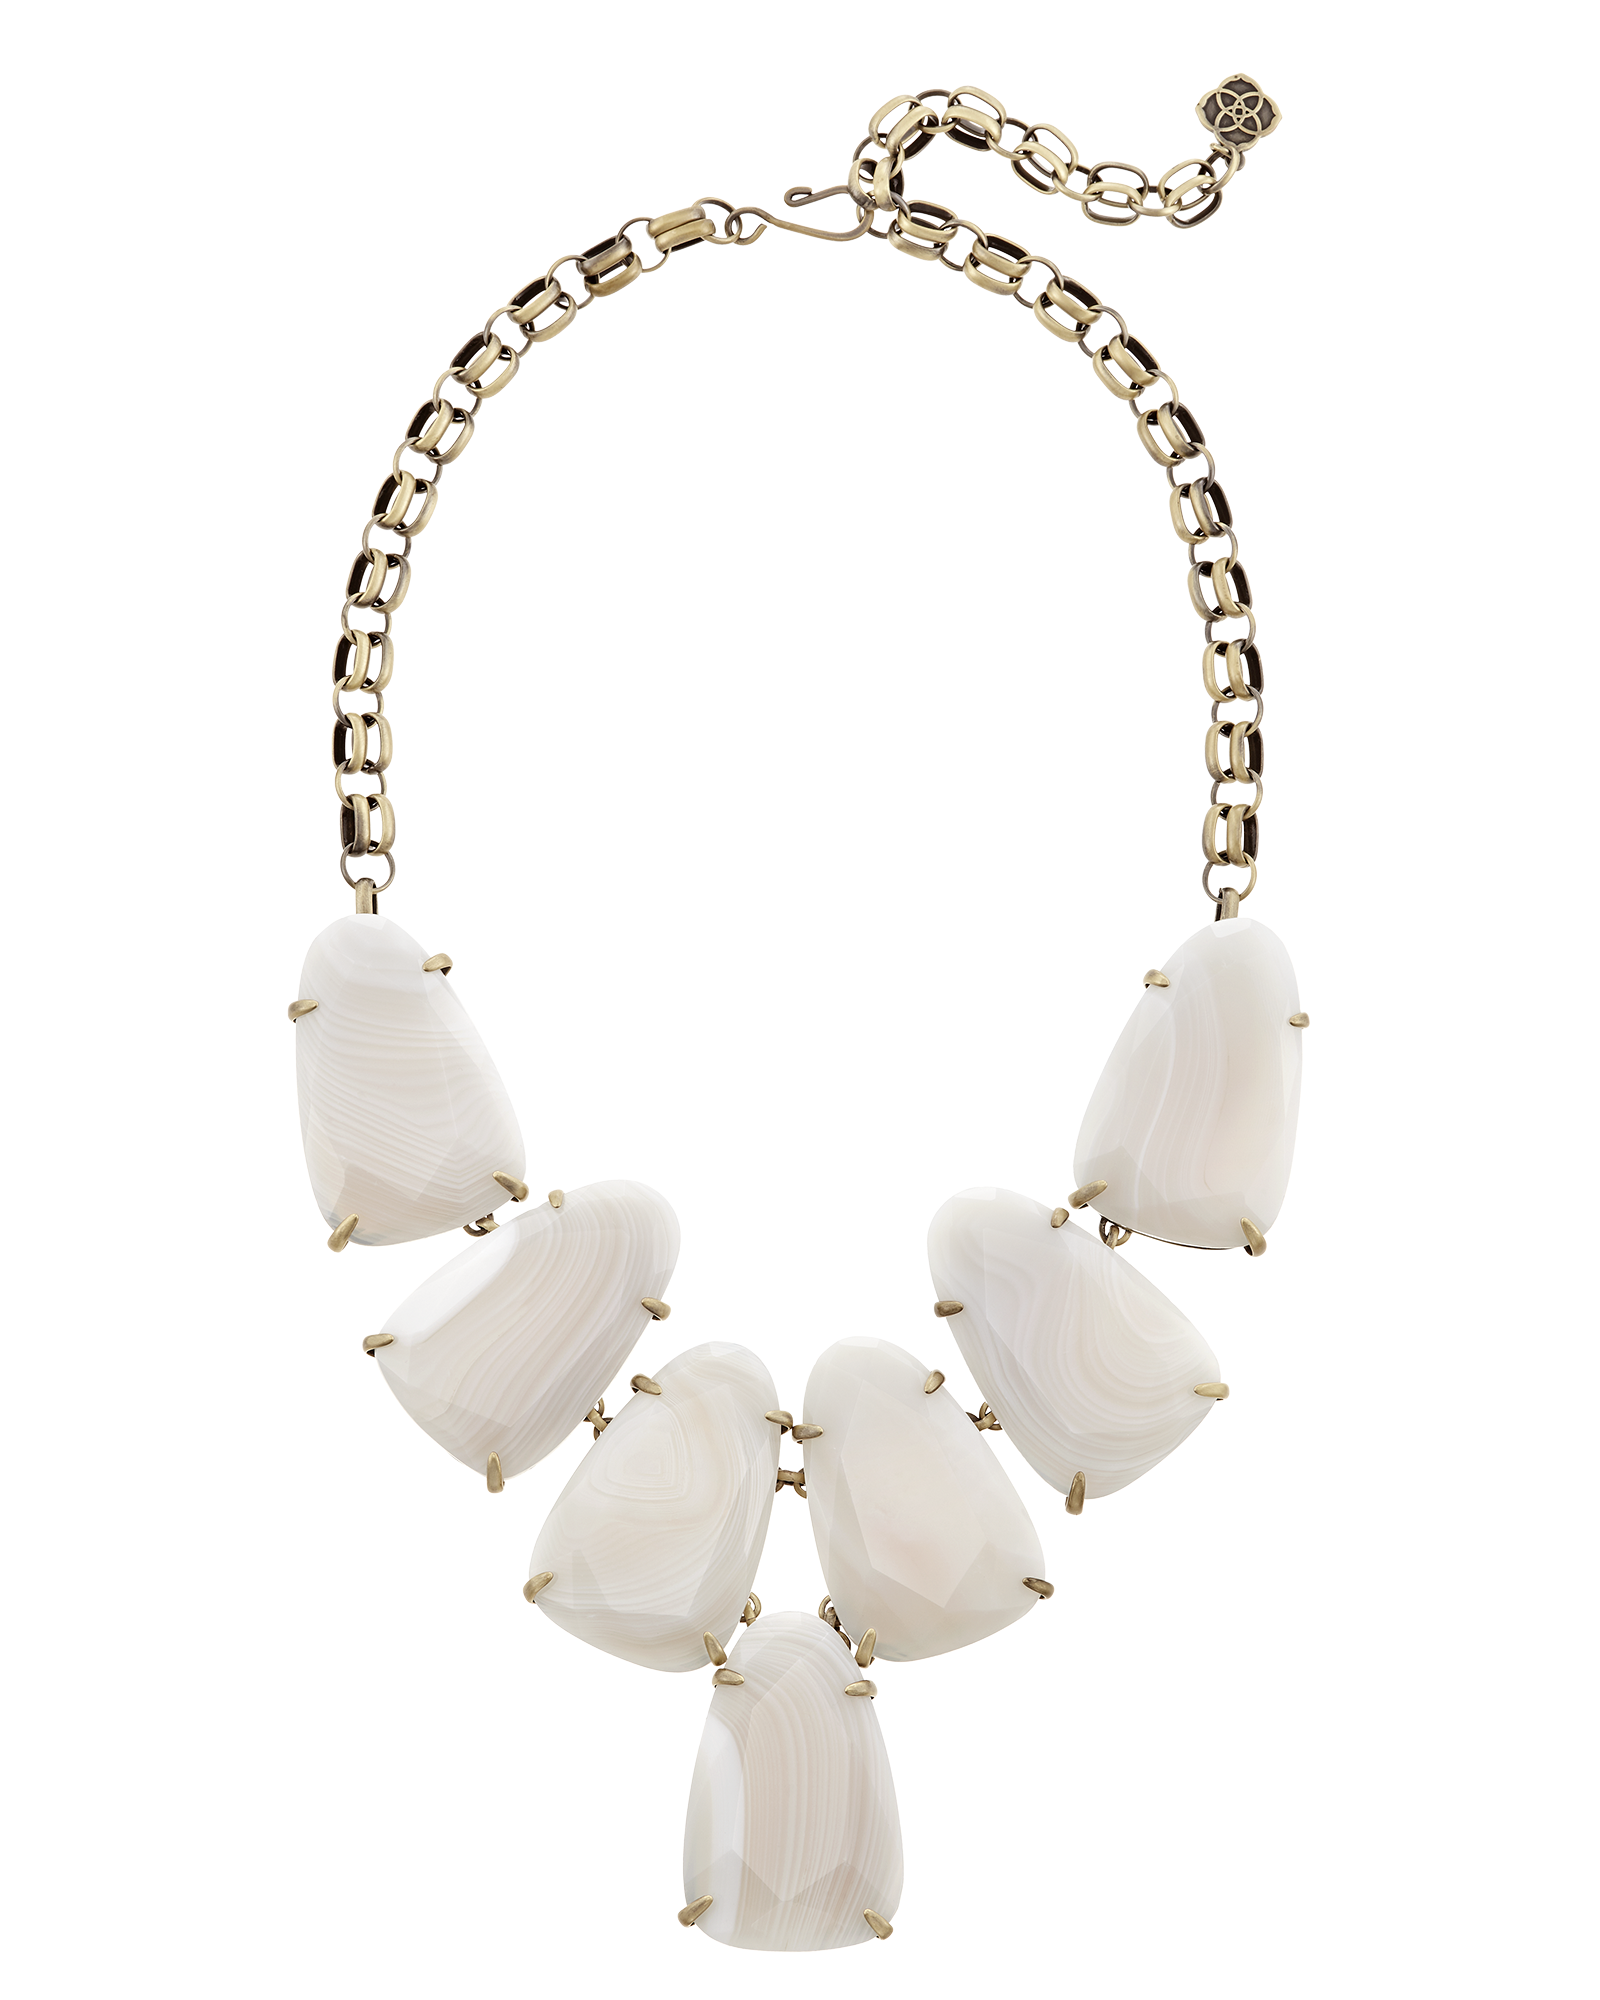 Harlow Statement Necklace in White Banded Agate